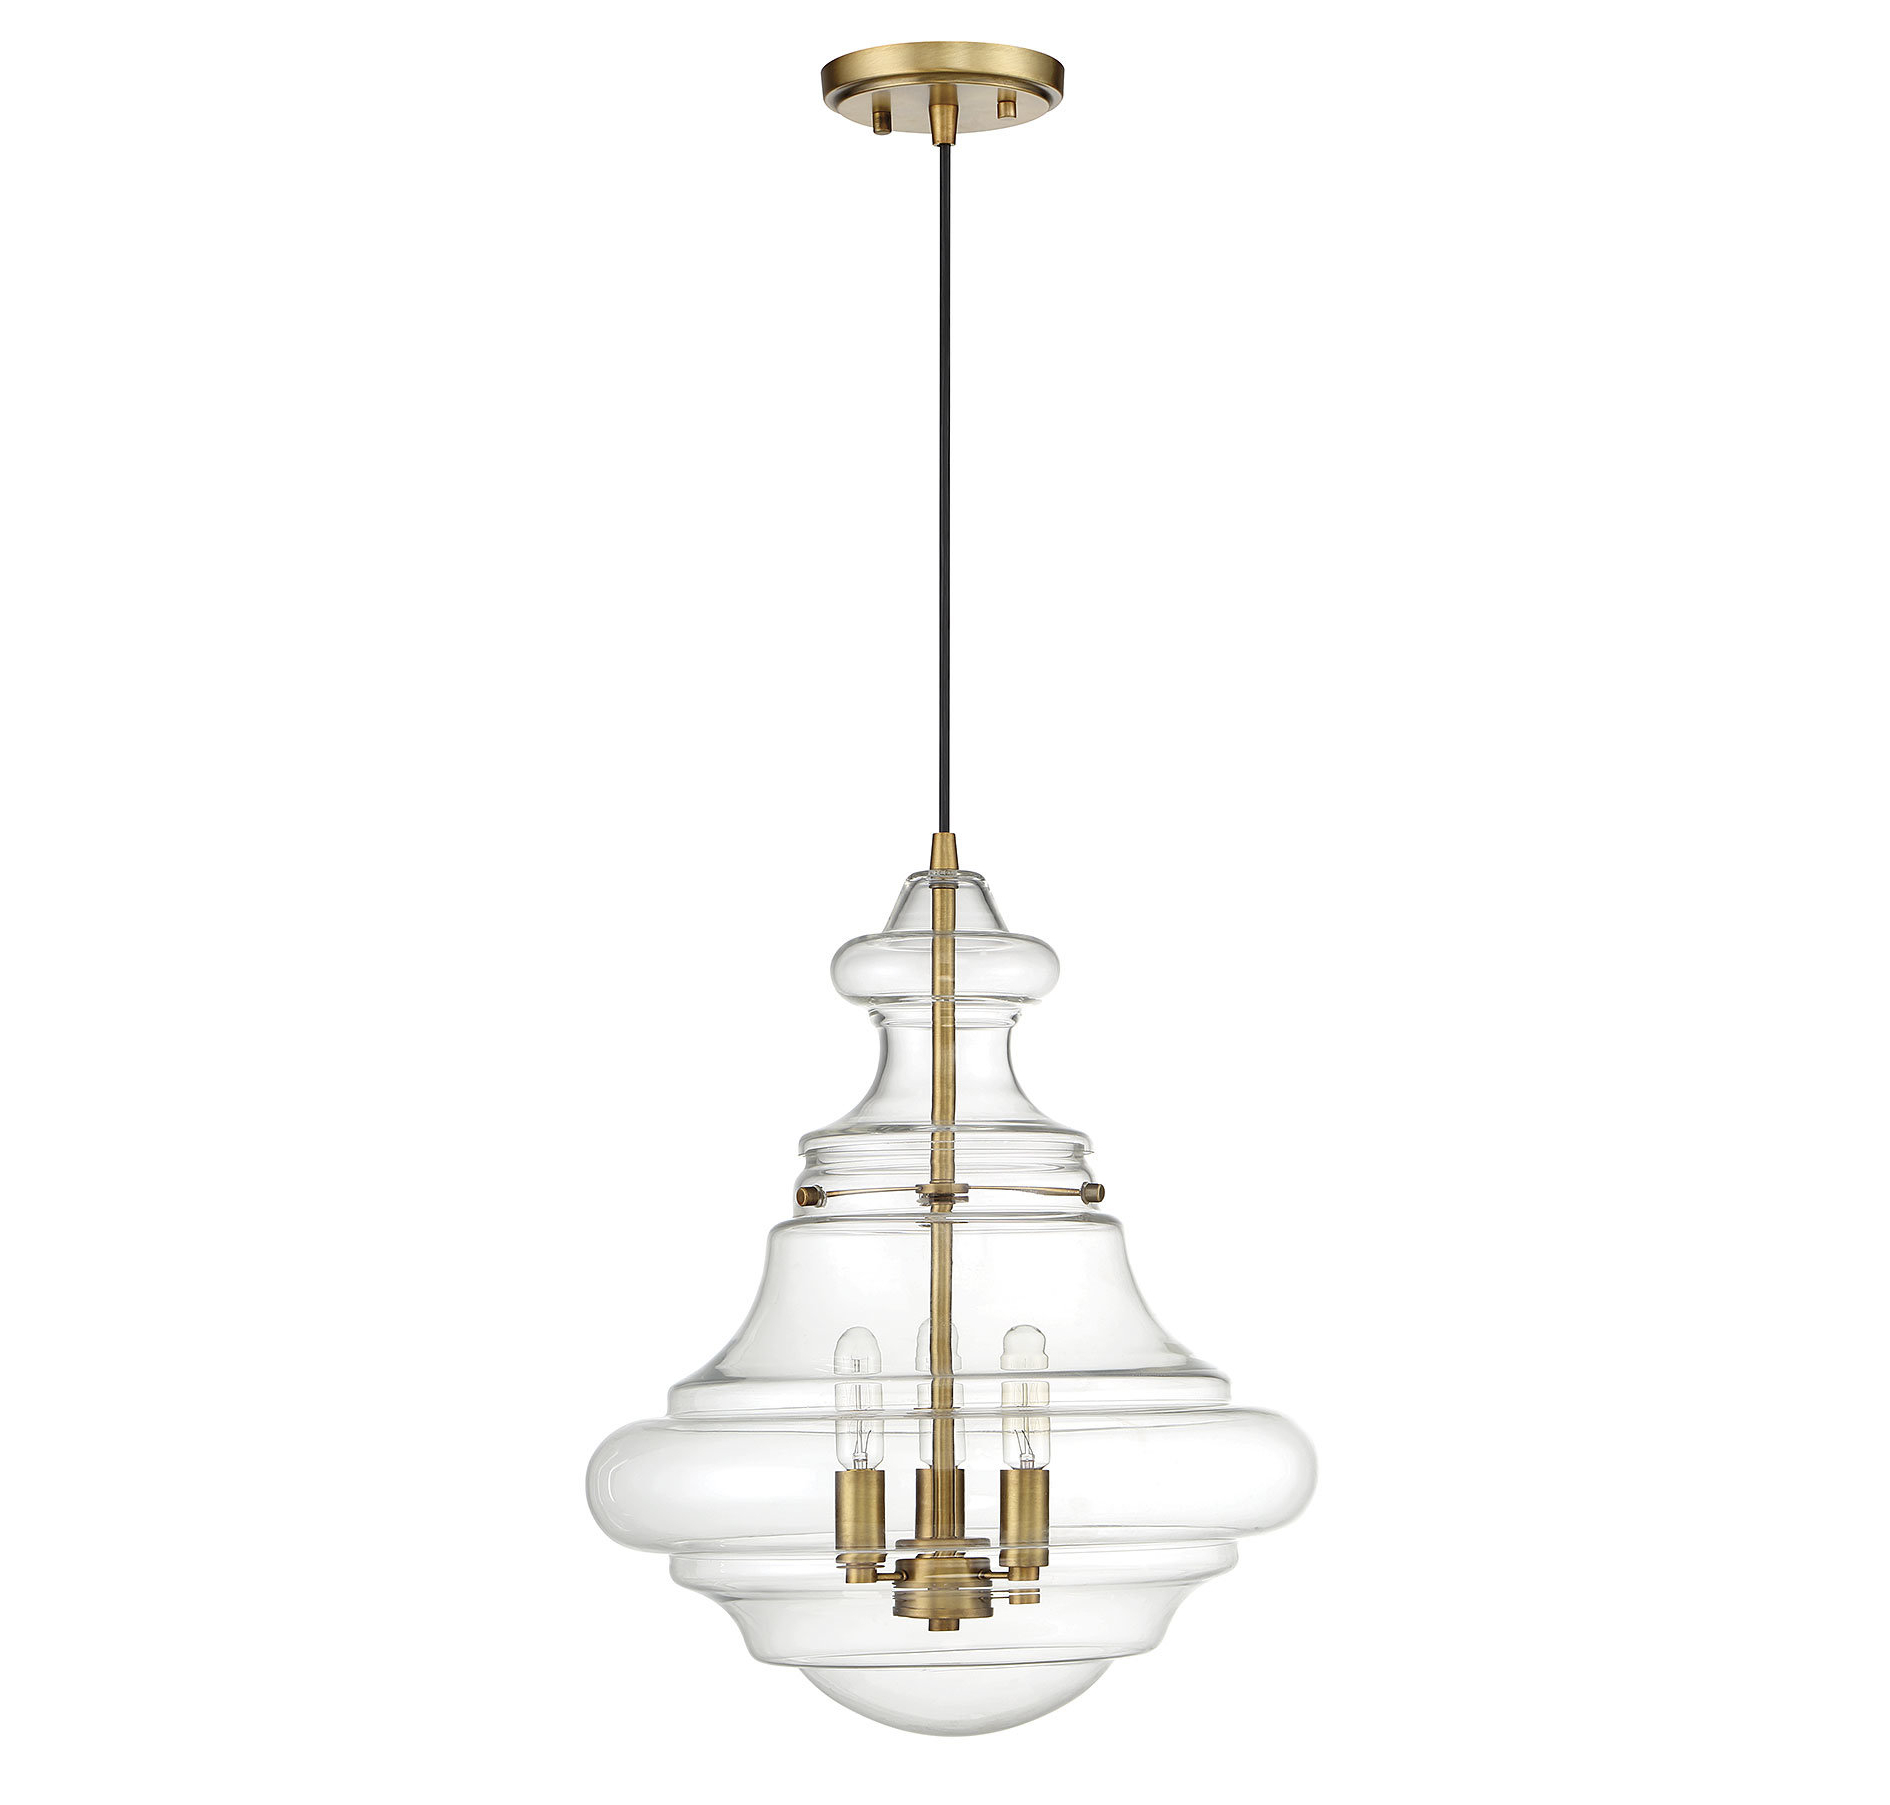 School House Light – Gnubies Within Most Up To Date Nadine 1 Light Single Schoolhouse Pendants (View 17 of 20)